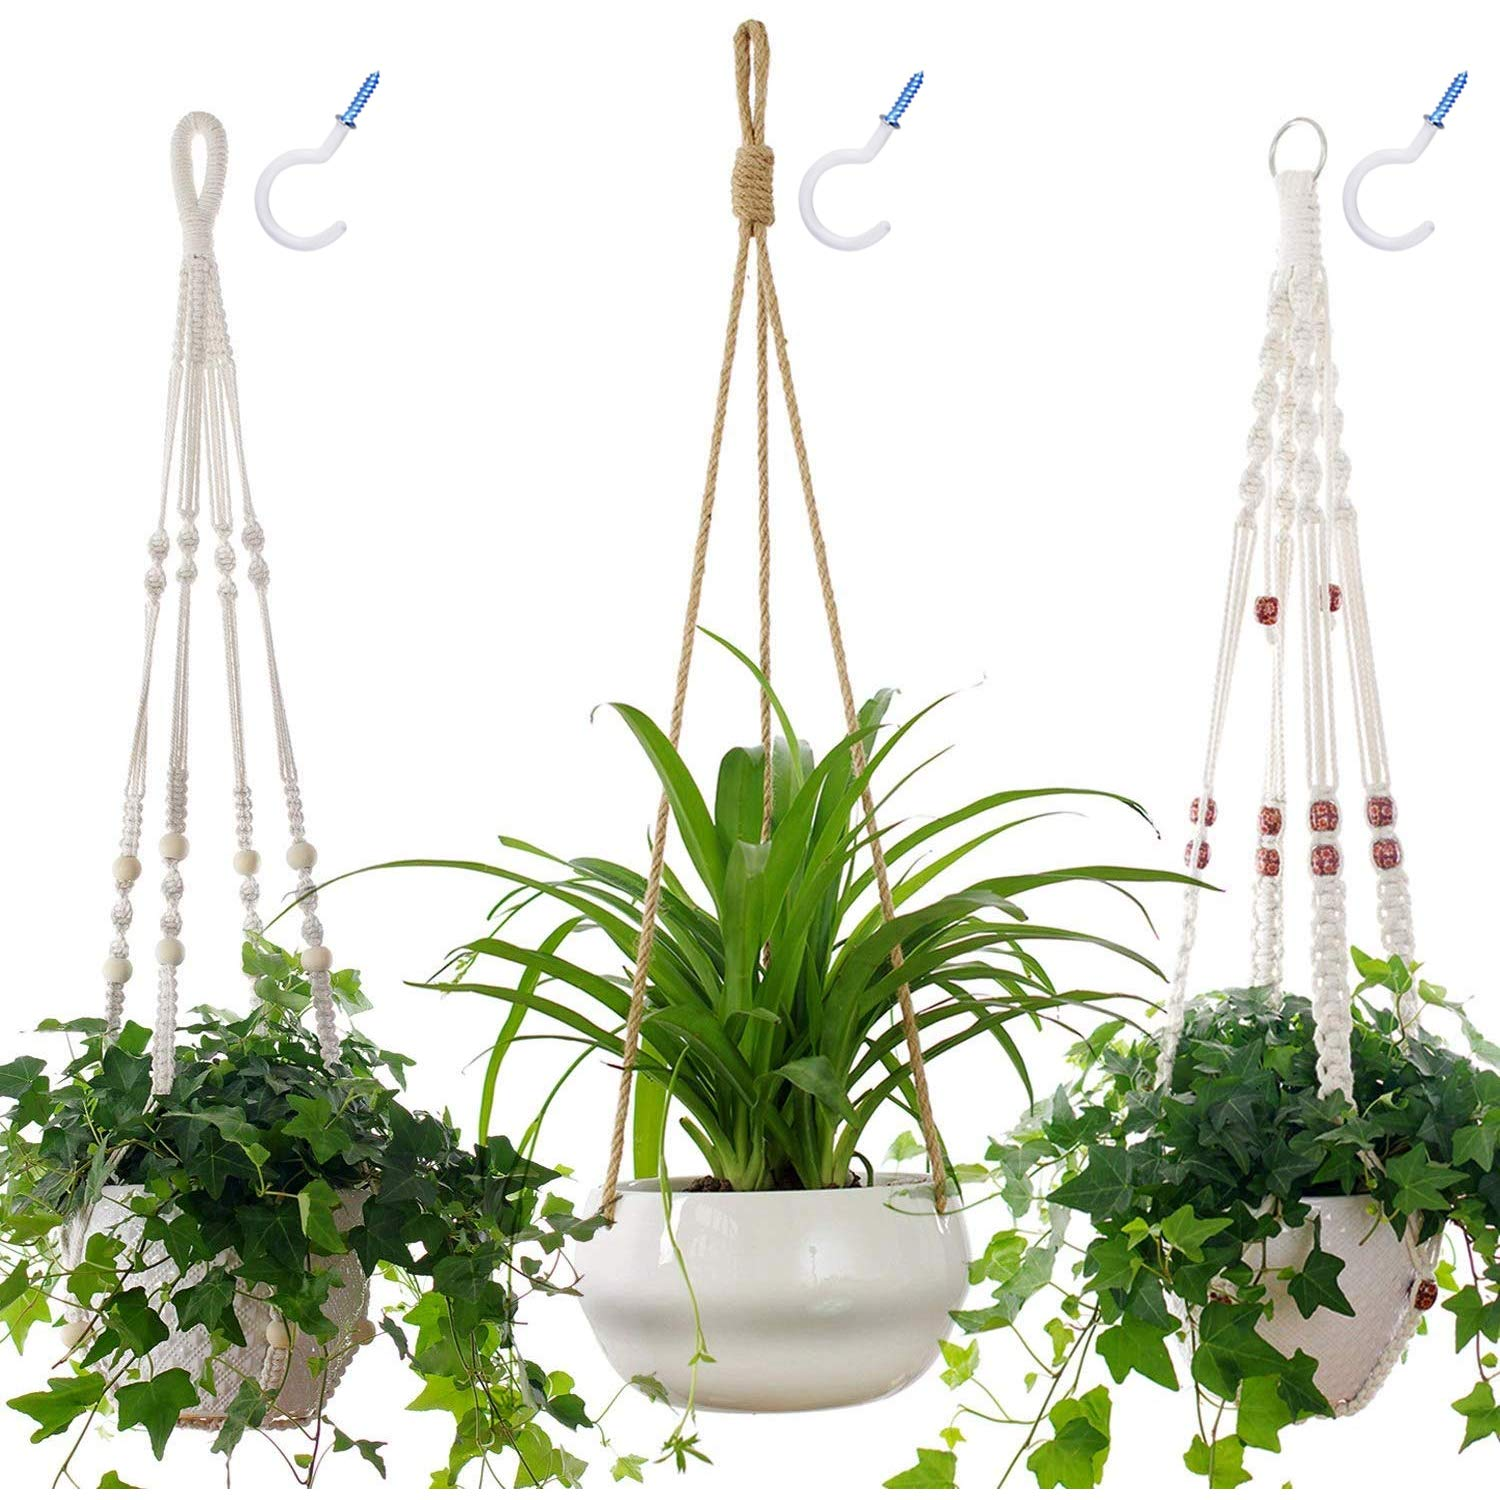 8 Inches Large Hanging Ceramic Planter Pot with 2-Piece Macrame Plant Hangers Pots not Included , Hanging Flower Pot for Indoor Outdoor House Plants, with 3 PCS Ceiling Hooks